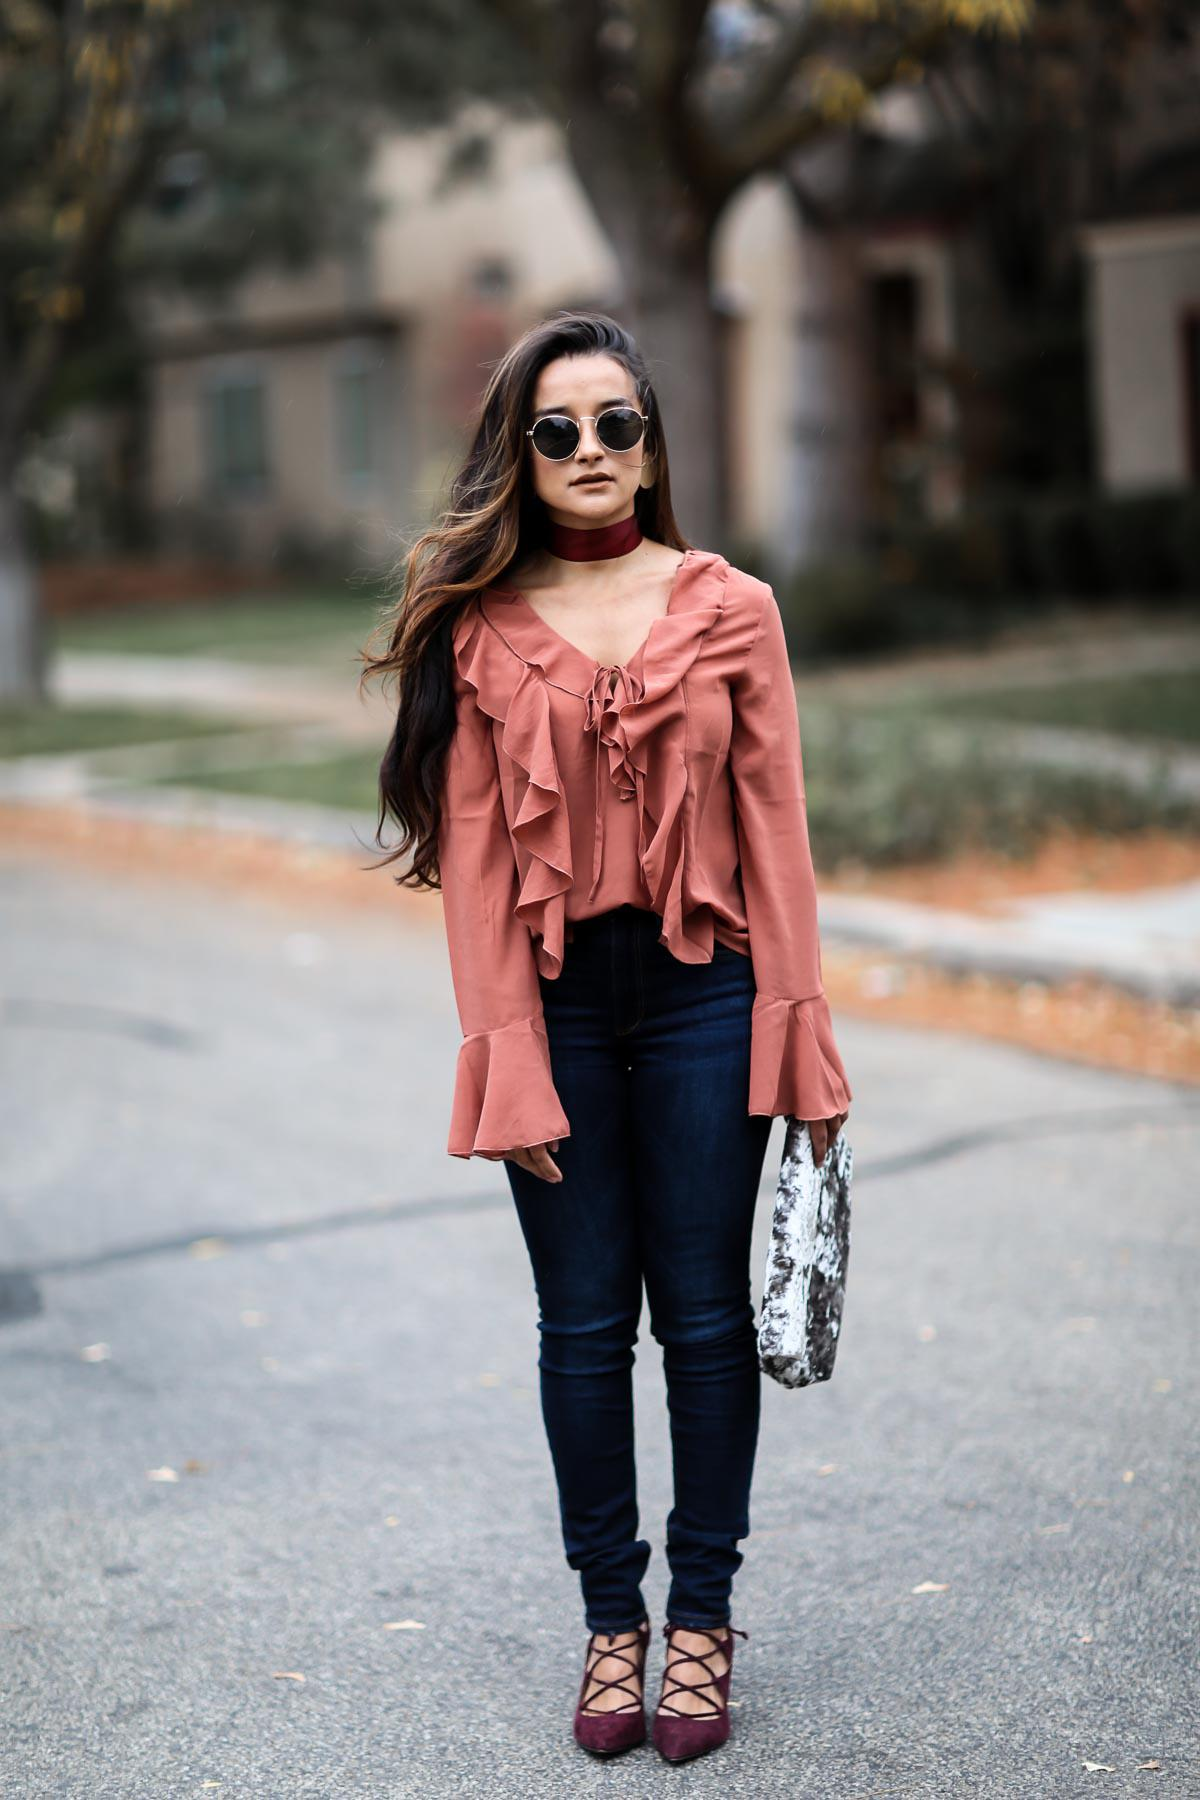 stiletto-confessions-forever21-ruffle-blouse-62